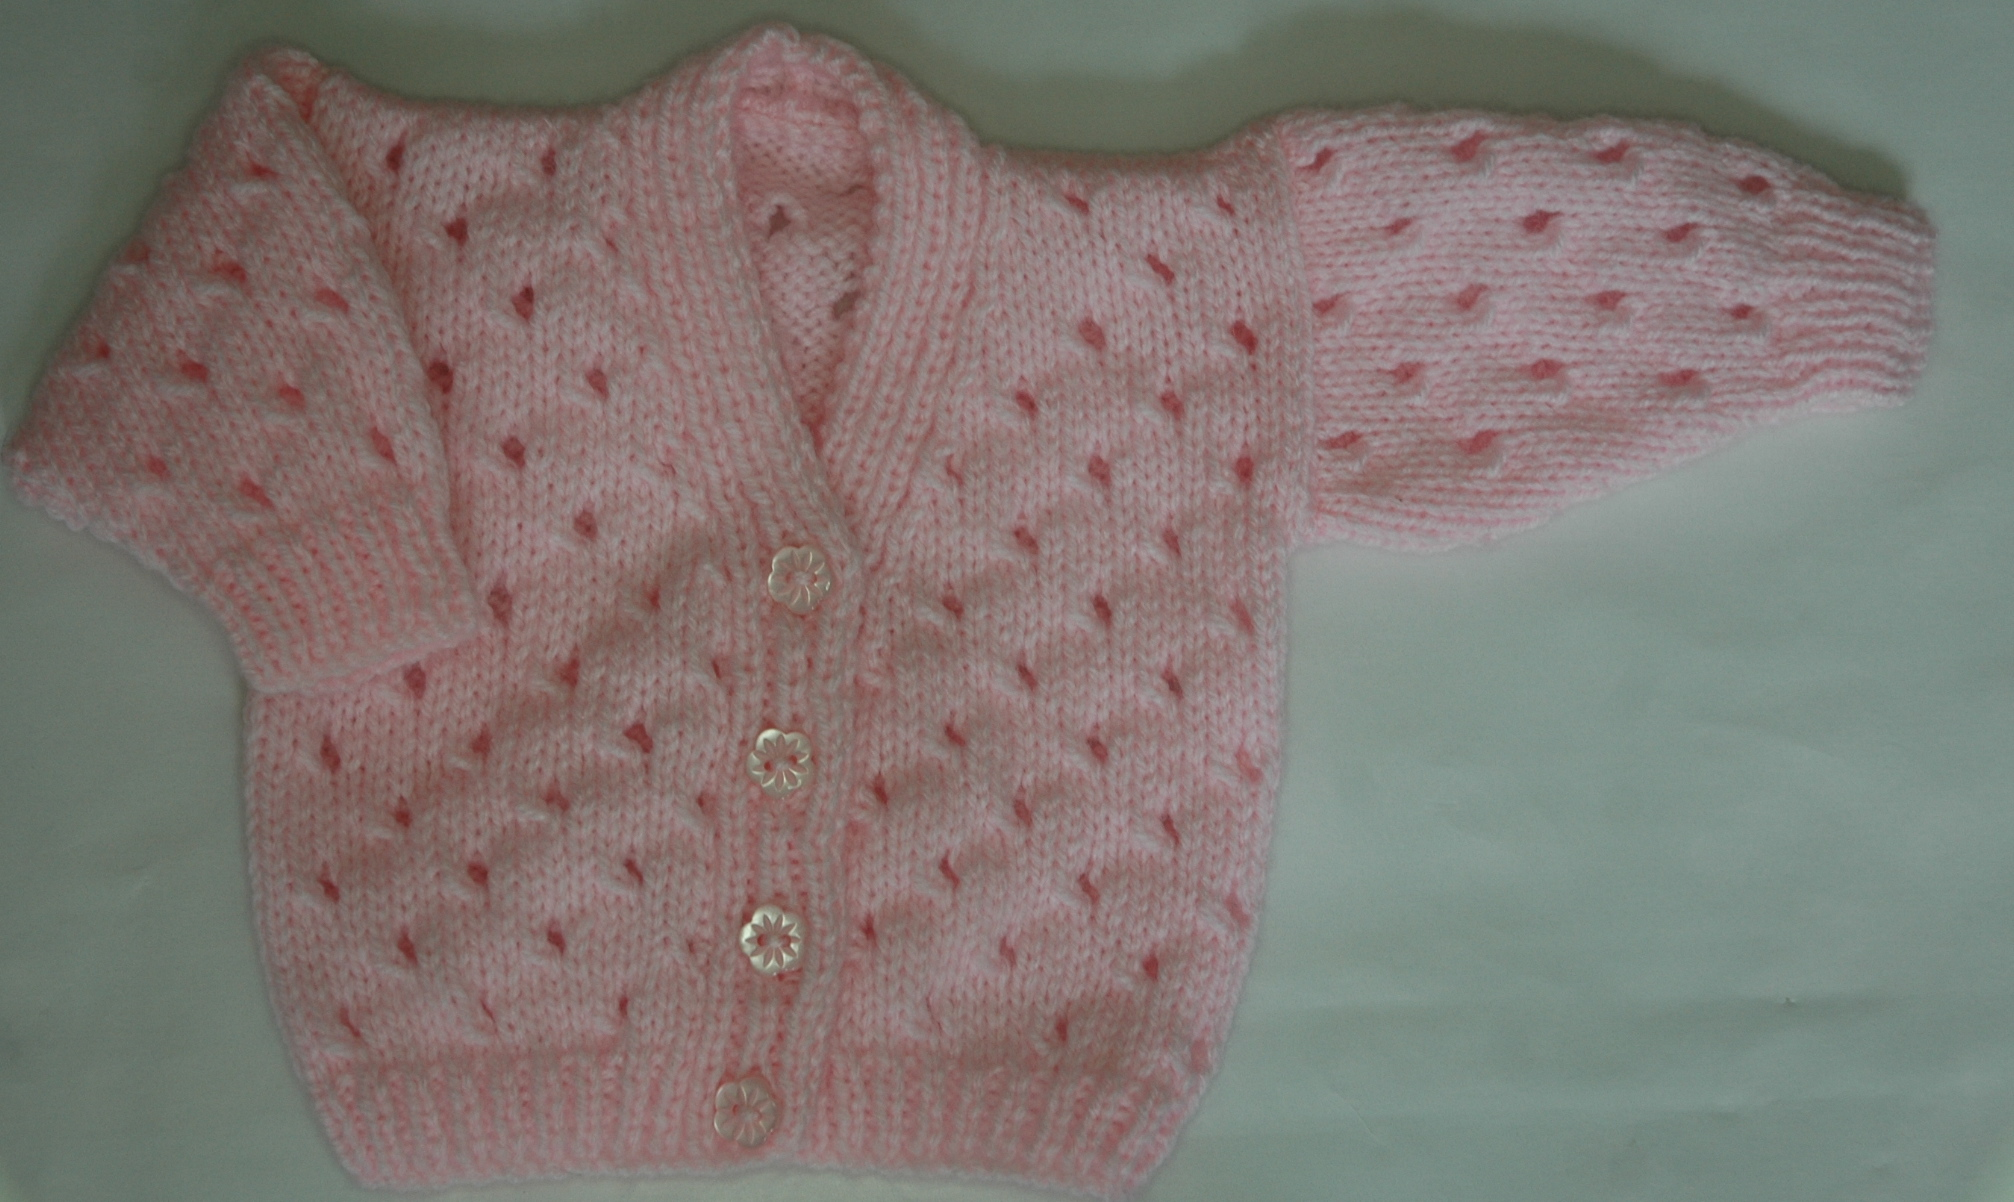 Knitting Pattern For Baby Cardigan Uk - Cardigan With Buttons